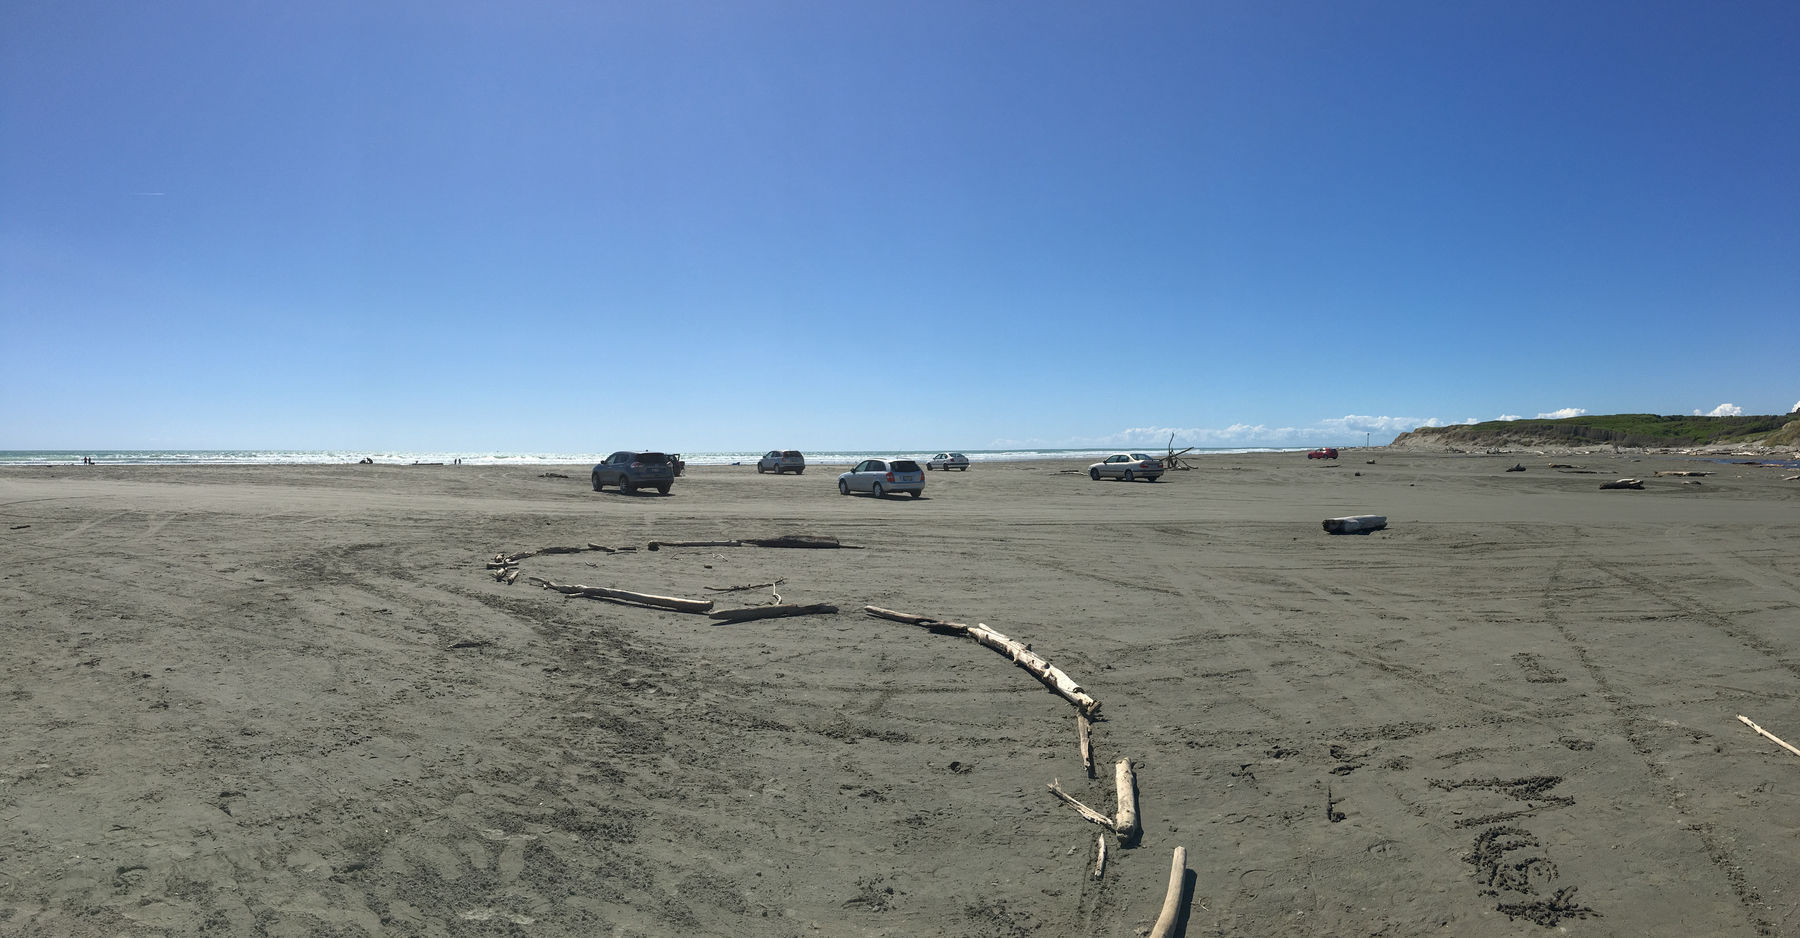 A photo of several cars parked up on a beach, with the waves crashing in the background in the mid afternoon on a beautiful late spring day